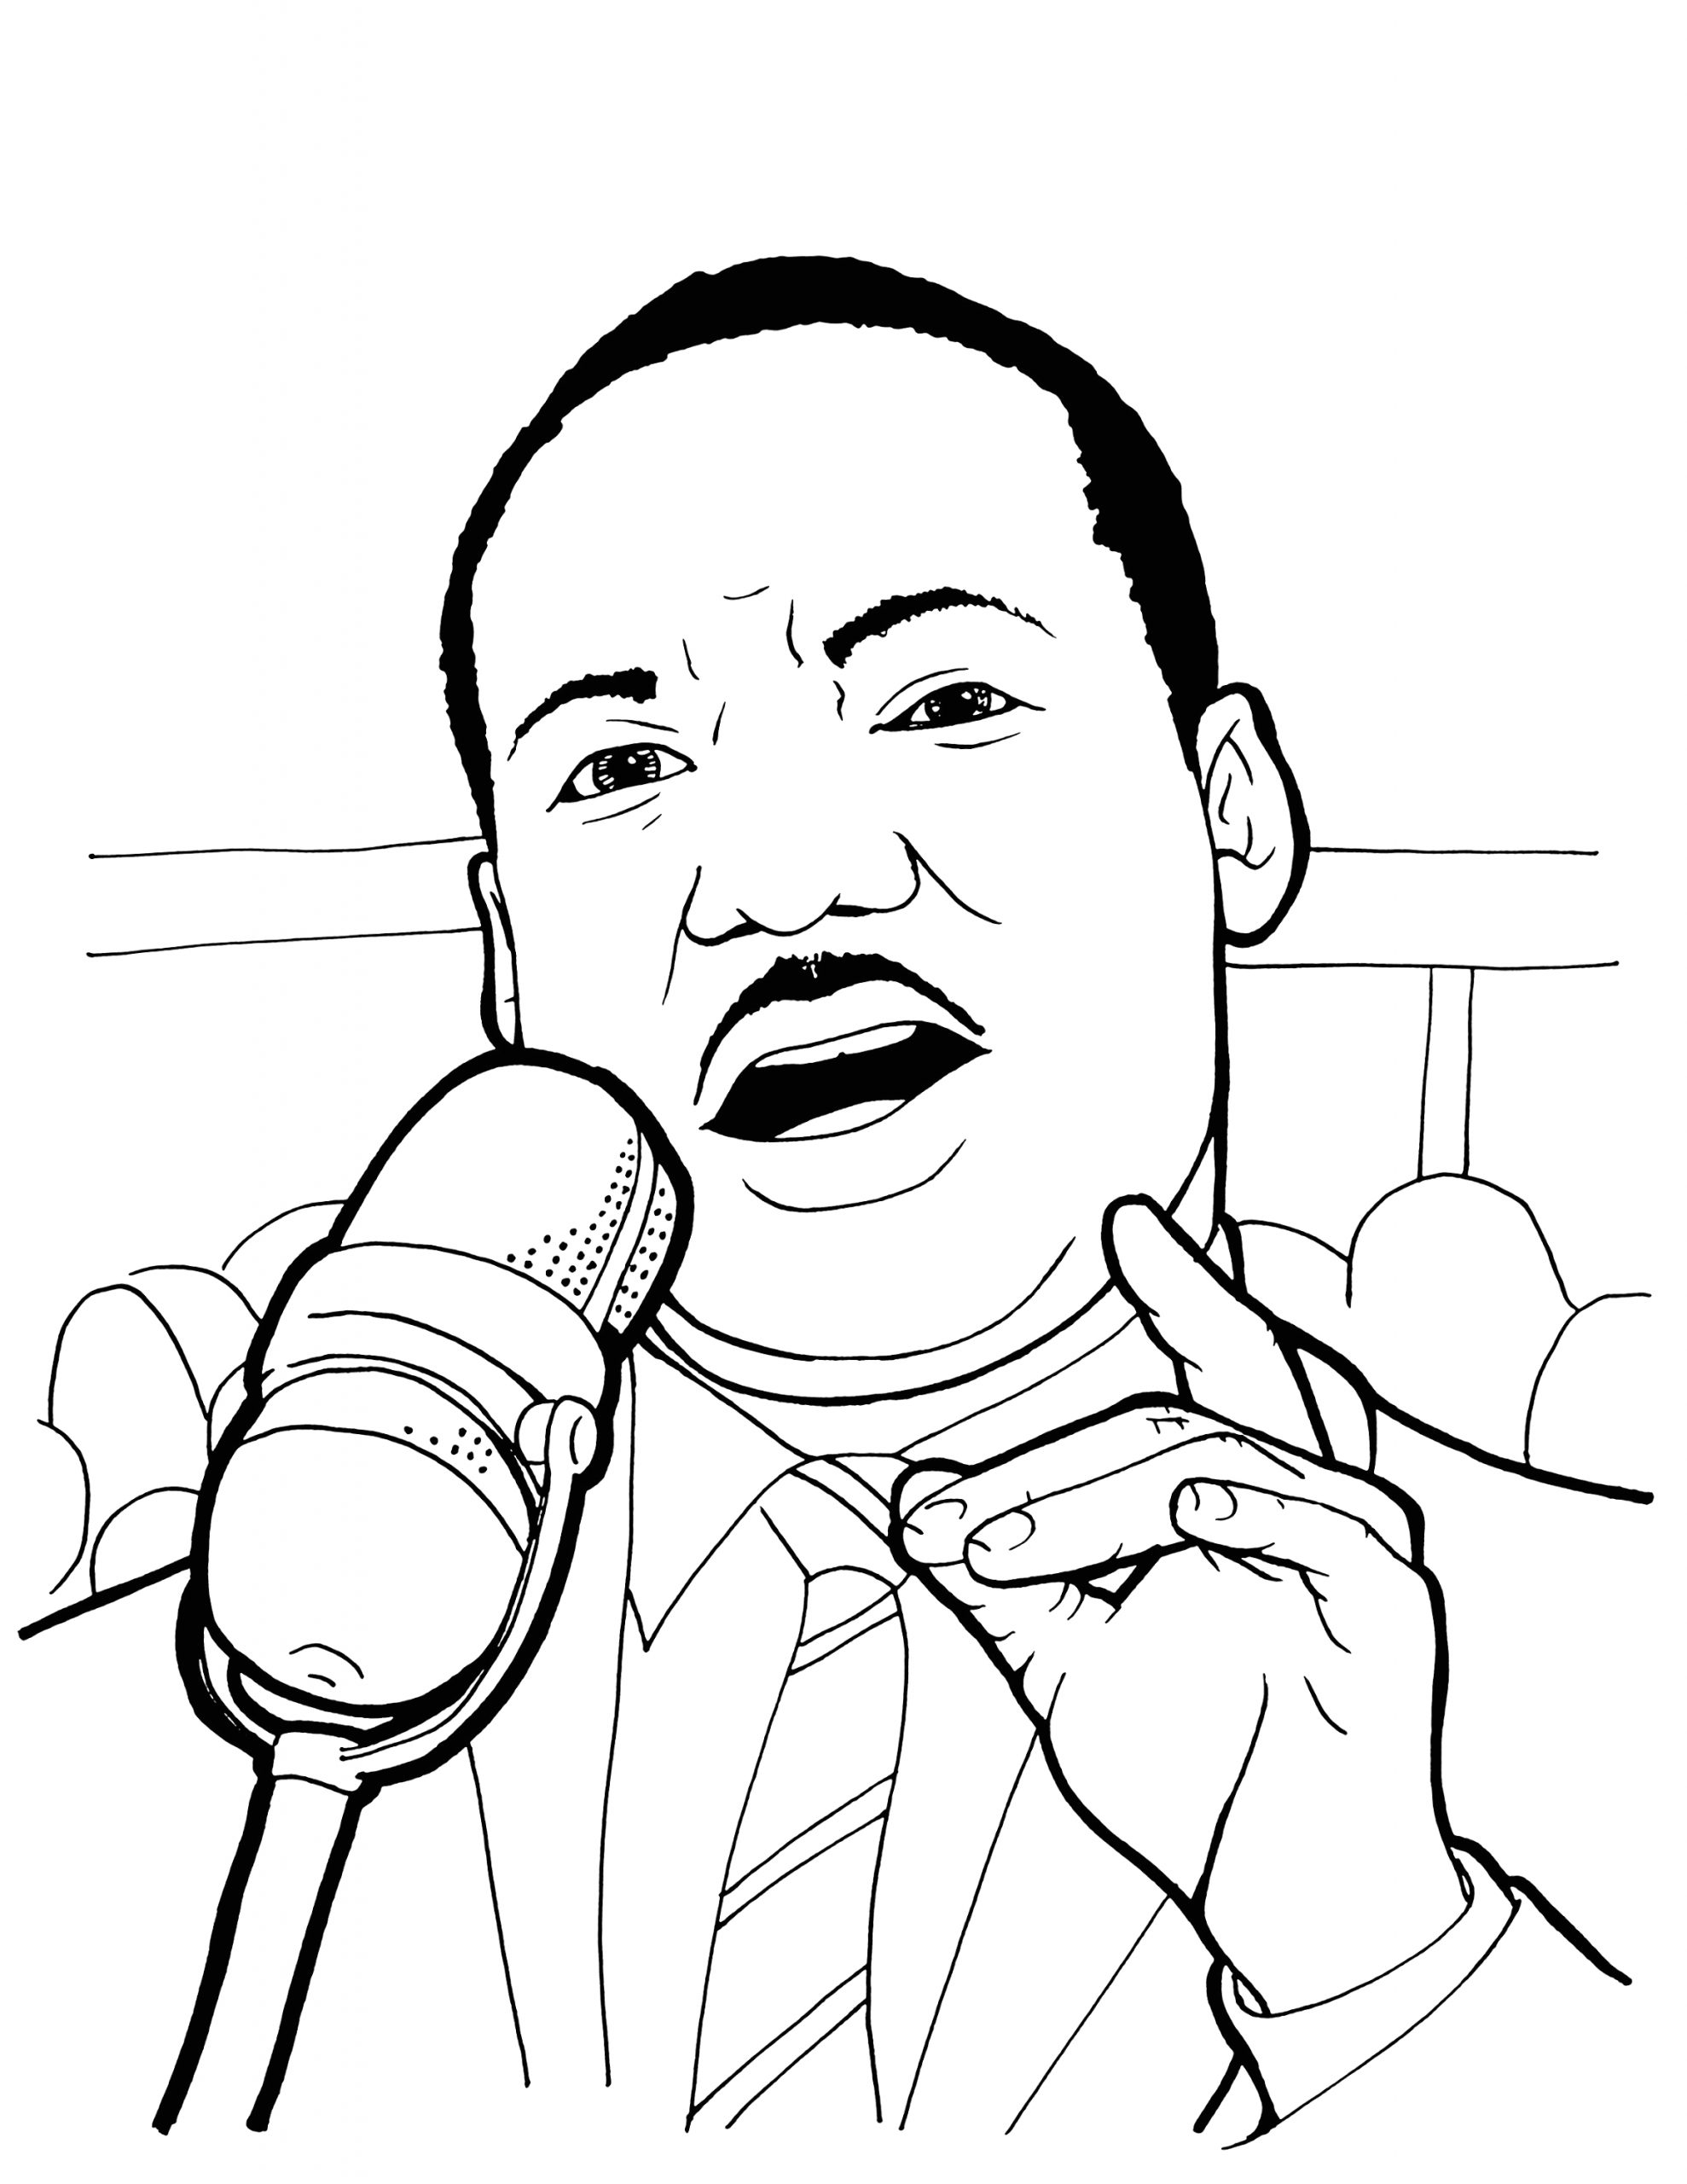 Printable Coloring Pages for Martin Luther King Martin Luther King Coloring Pages Printable at